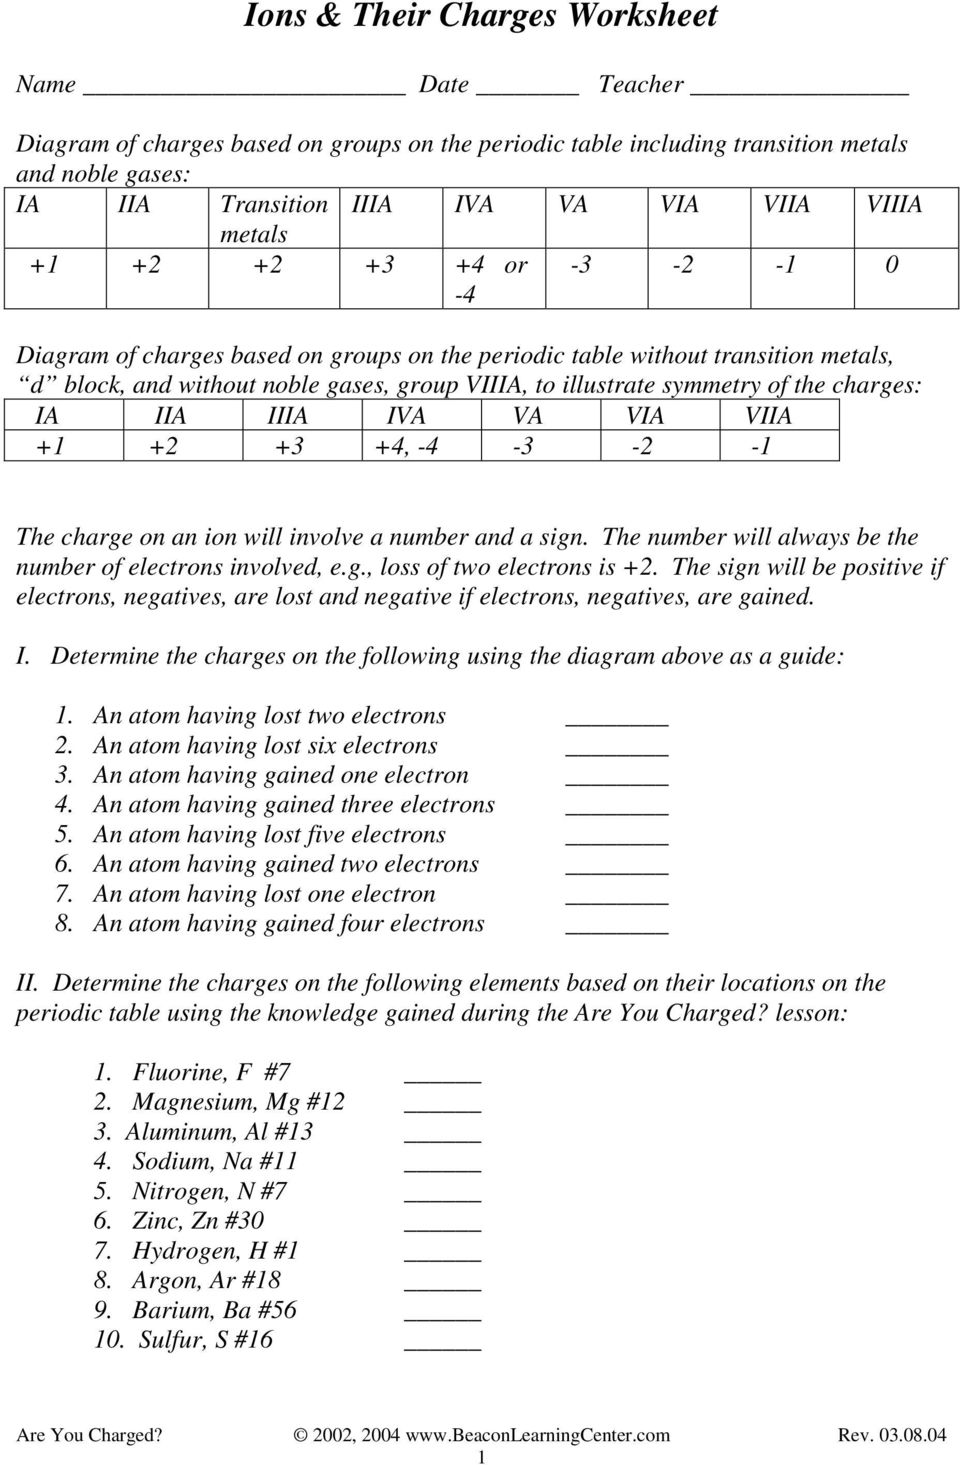 Ions their charges worksheet pdf charges ia iia iiia iva va via viia 1 2 3 urtaz Choice Image